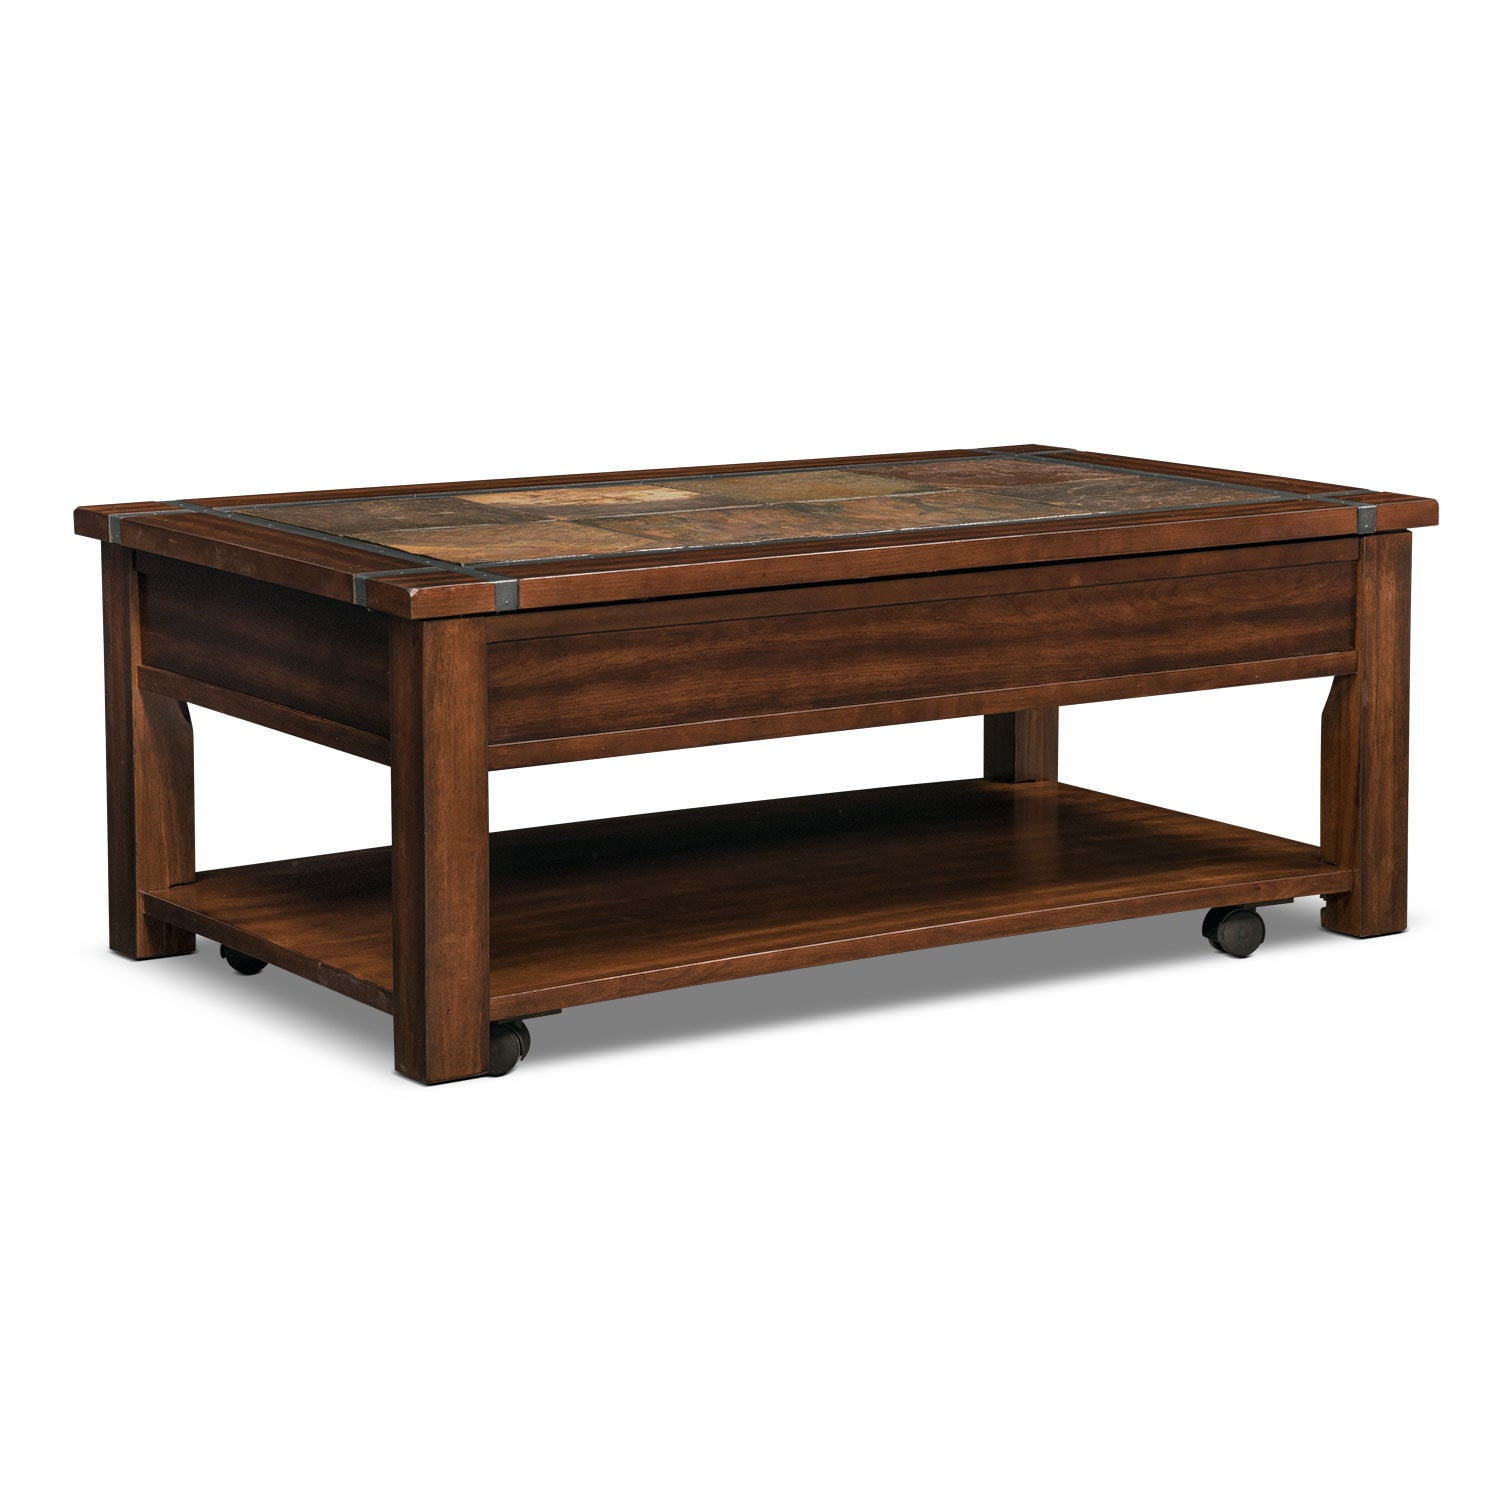 Slate Ridge LiftTop Cocktail Table Cherry Value City Furniture - Dining table with slate inlay